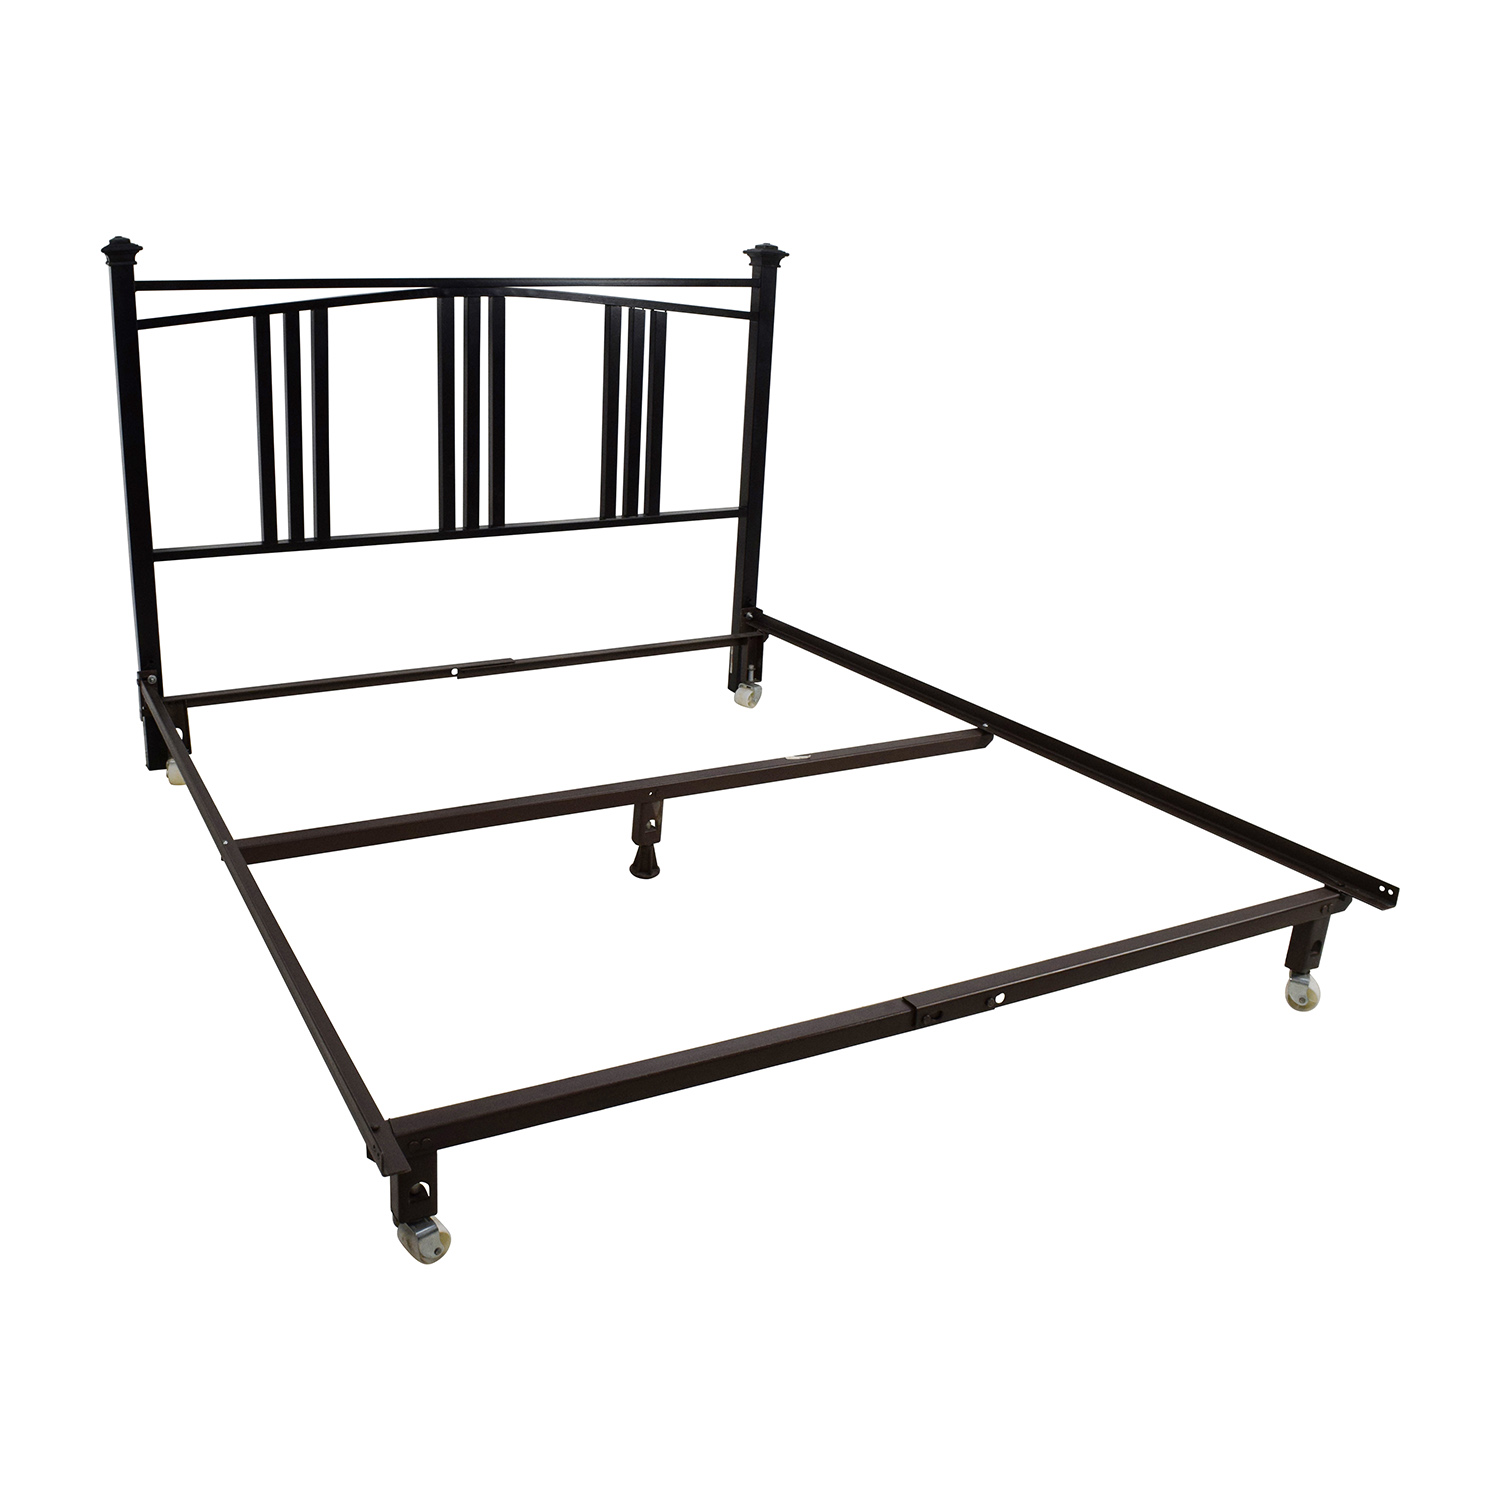 buy Life of Leisure Life of Leisure Queen Size Bed Frame online